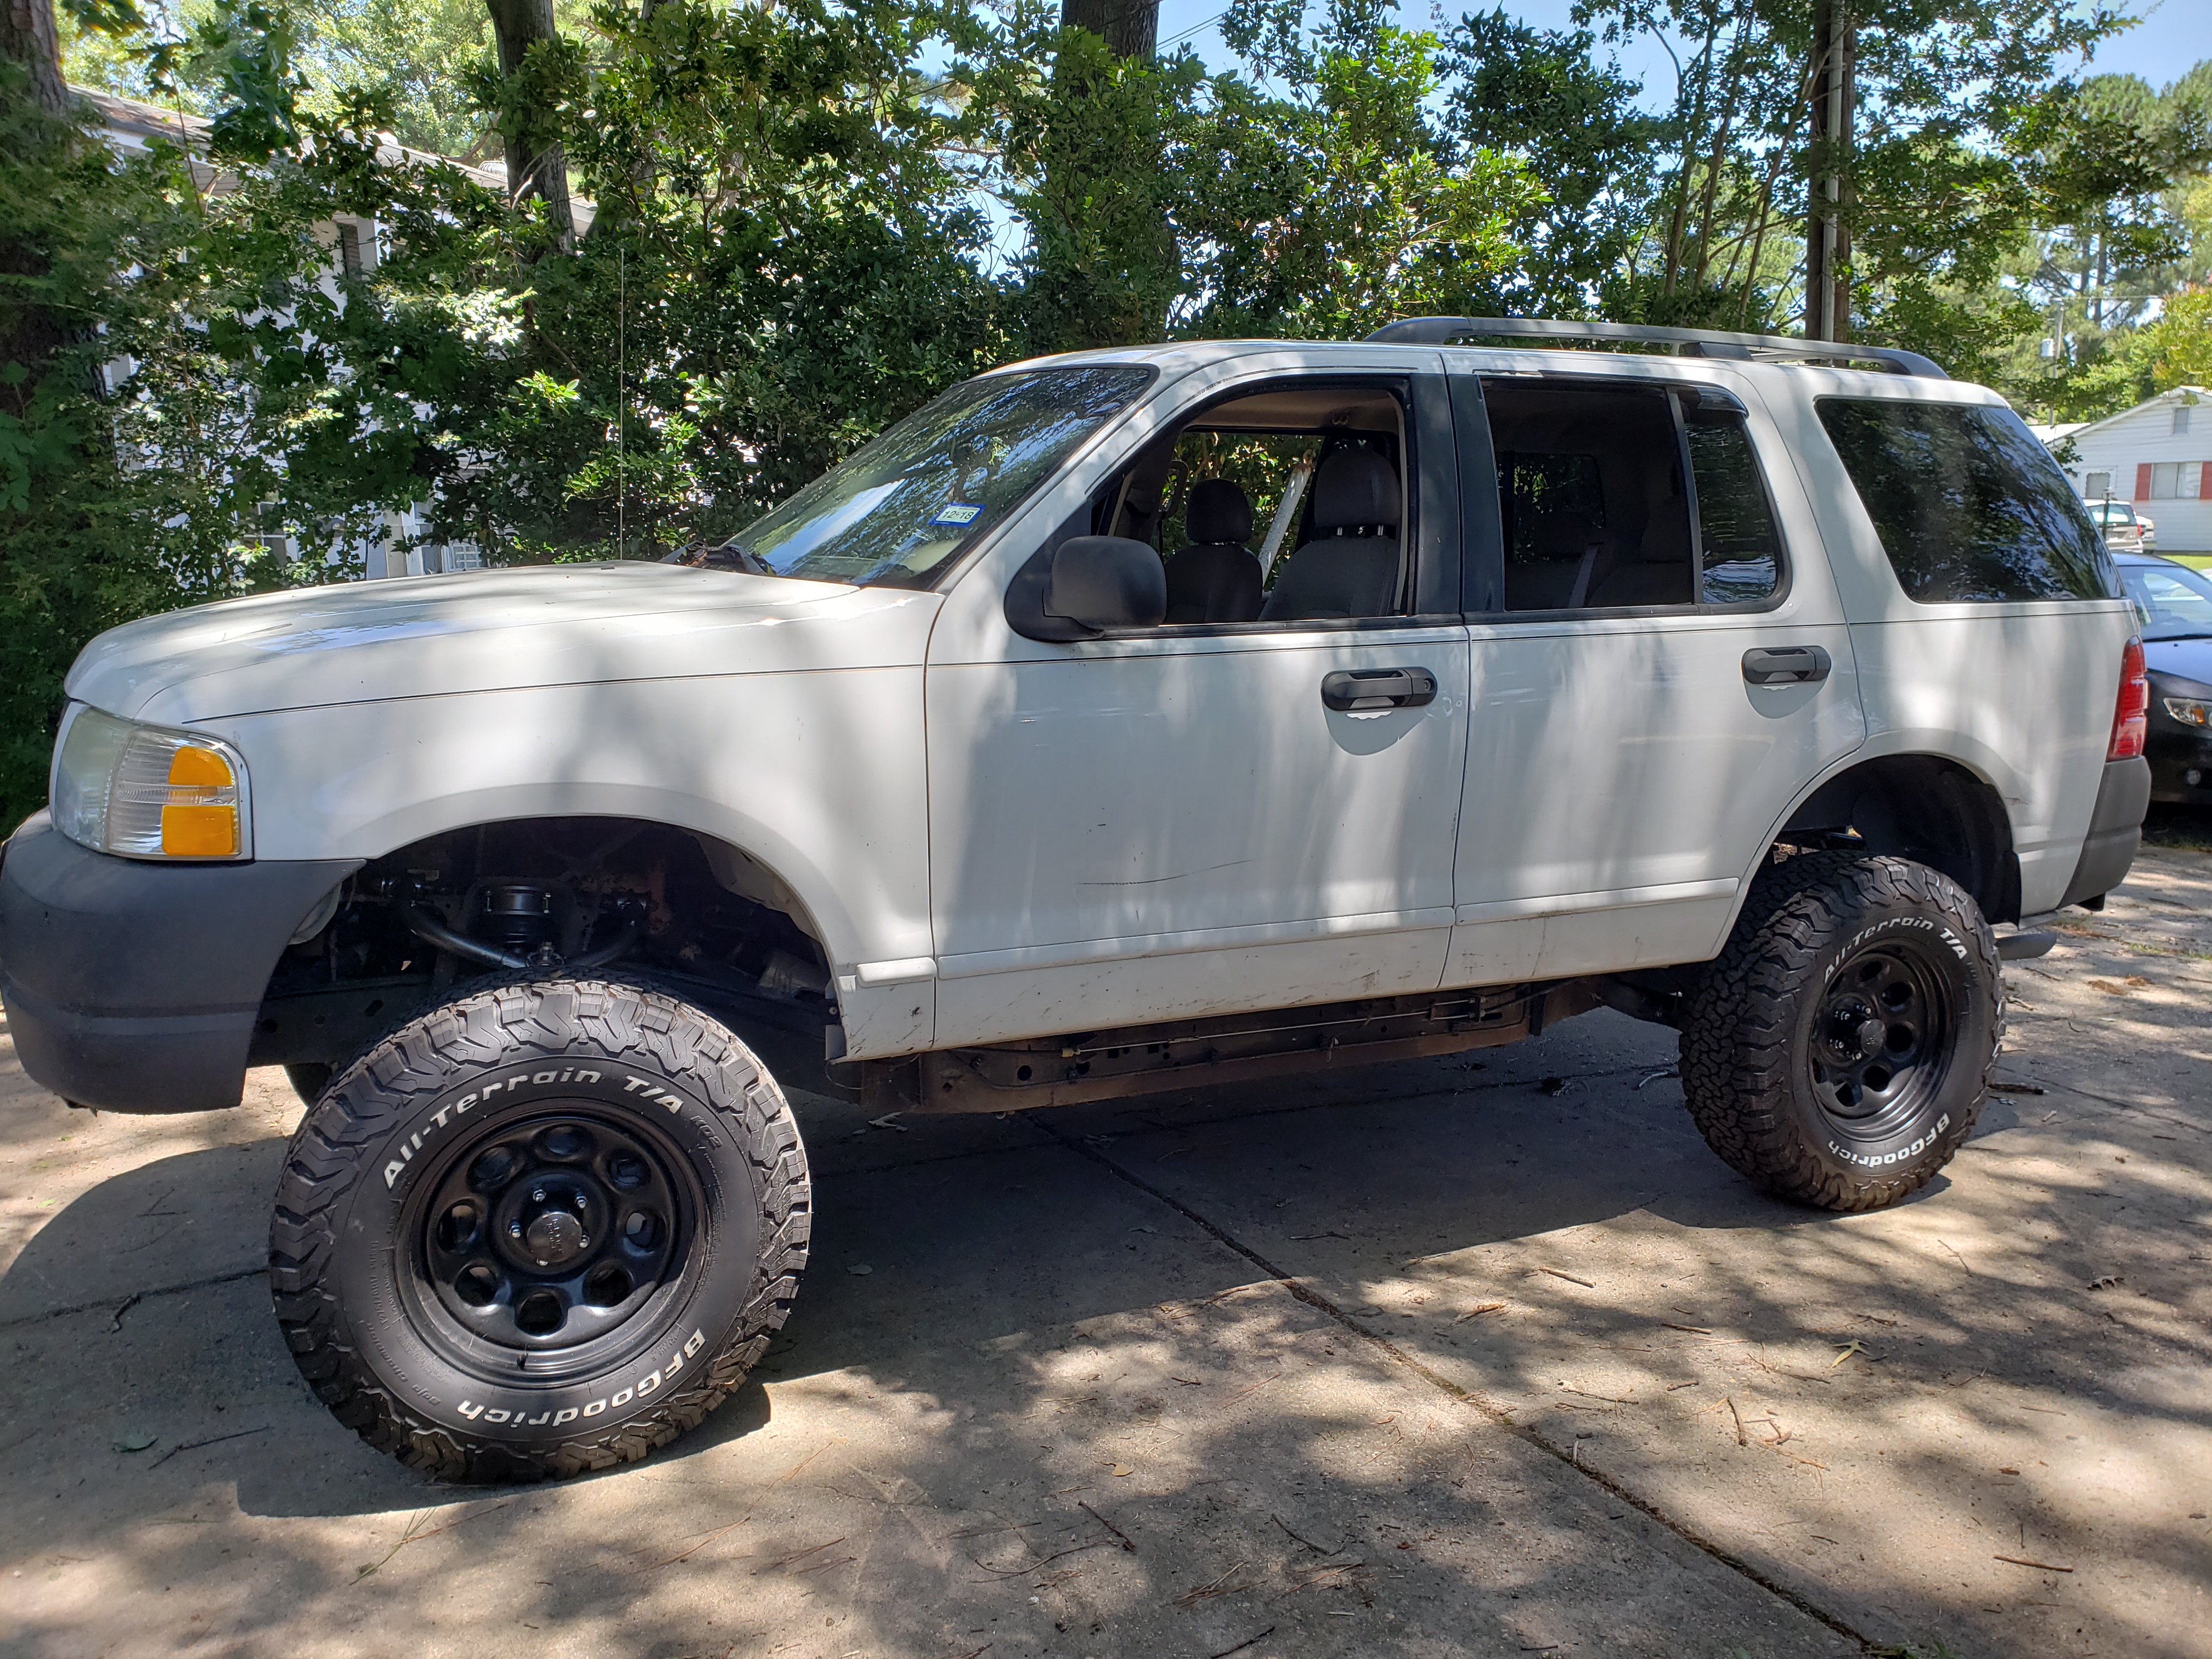 Lift Kit For 03 Mountaineer Ford Explorer And Ford Ranger Forums Serious Explorations